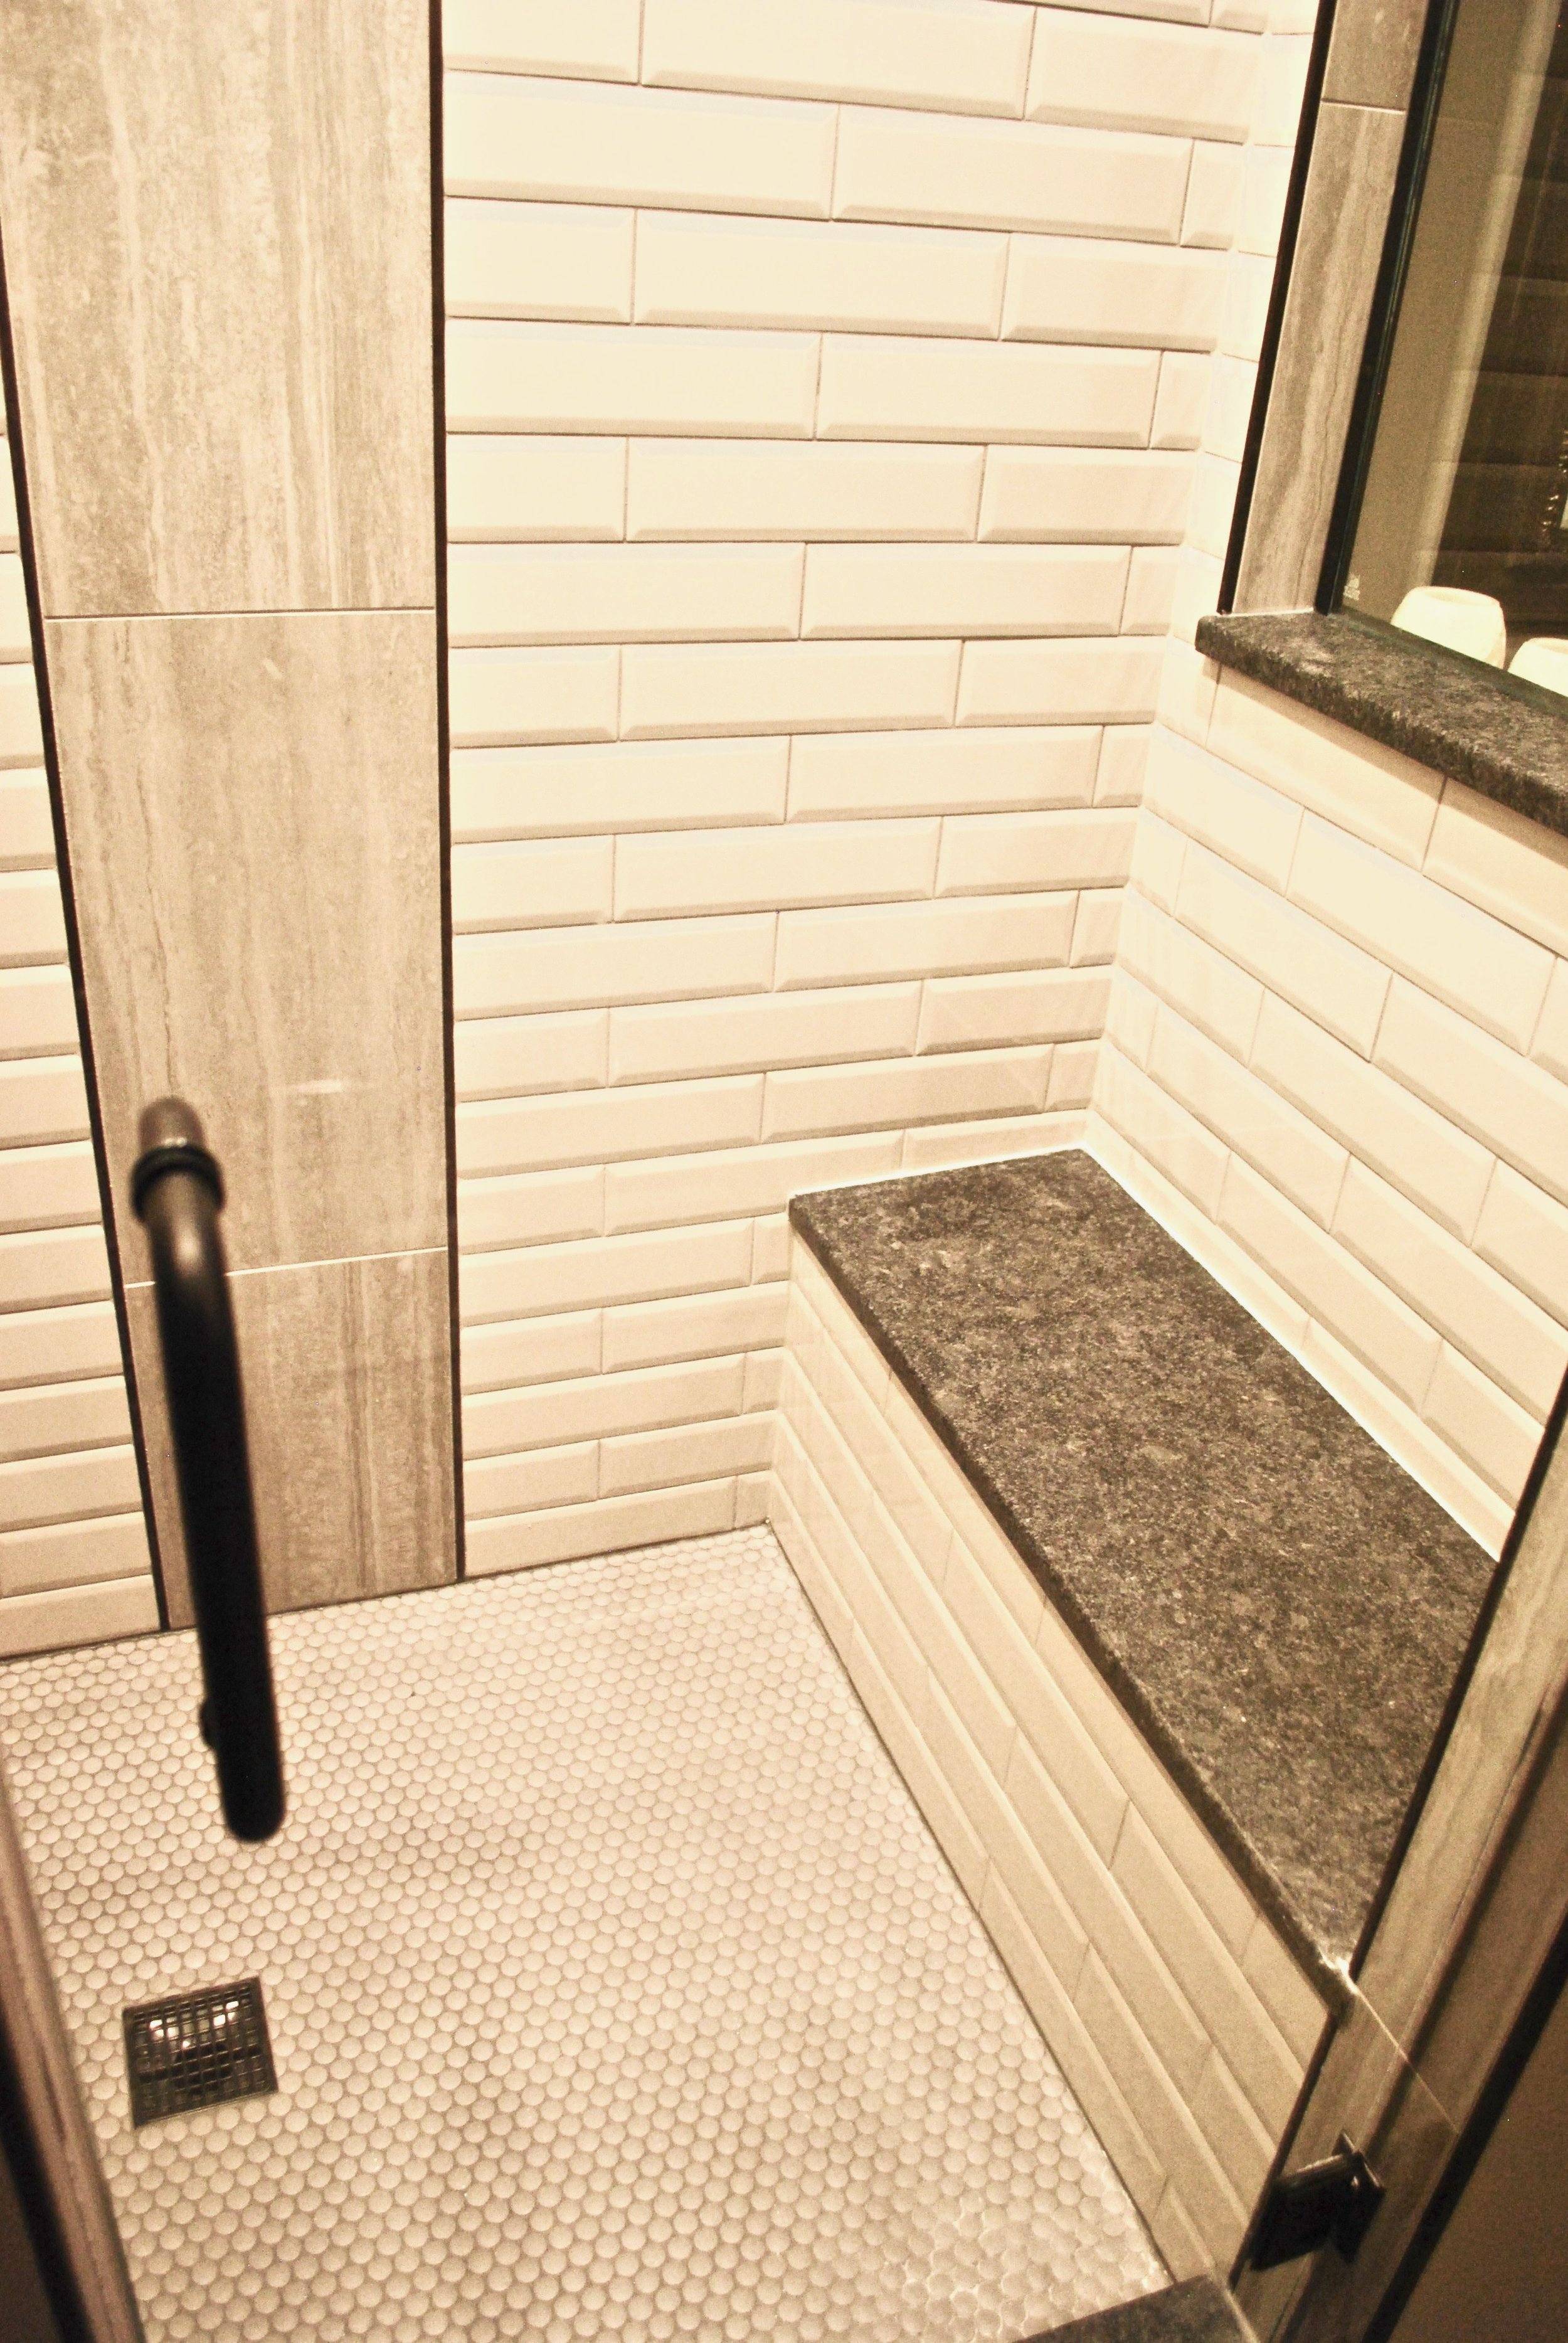 Shower Remodel in this St. Charles IL Custom Home. Master Shower Renovations & Remodeling in Naperville IL.